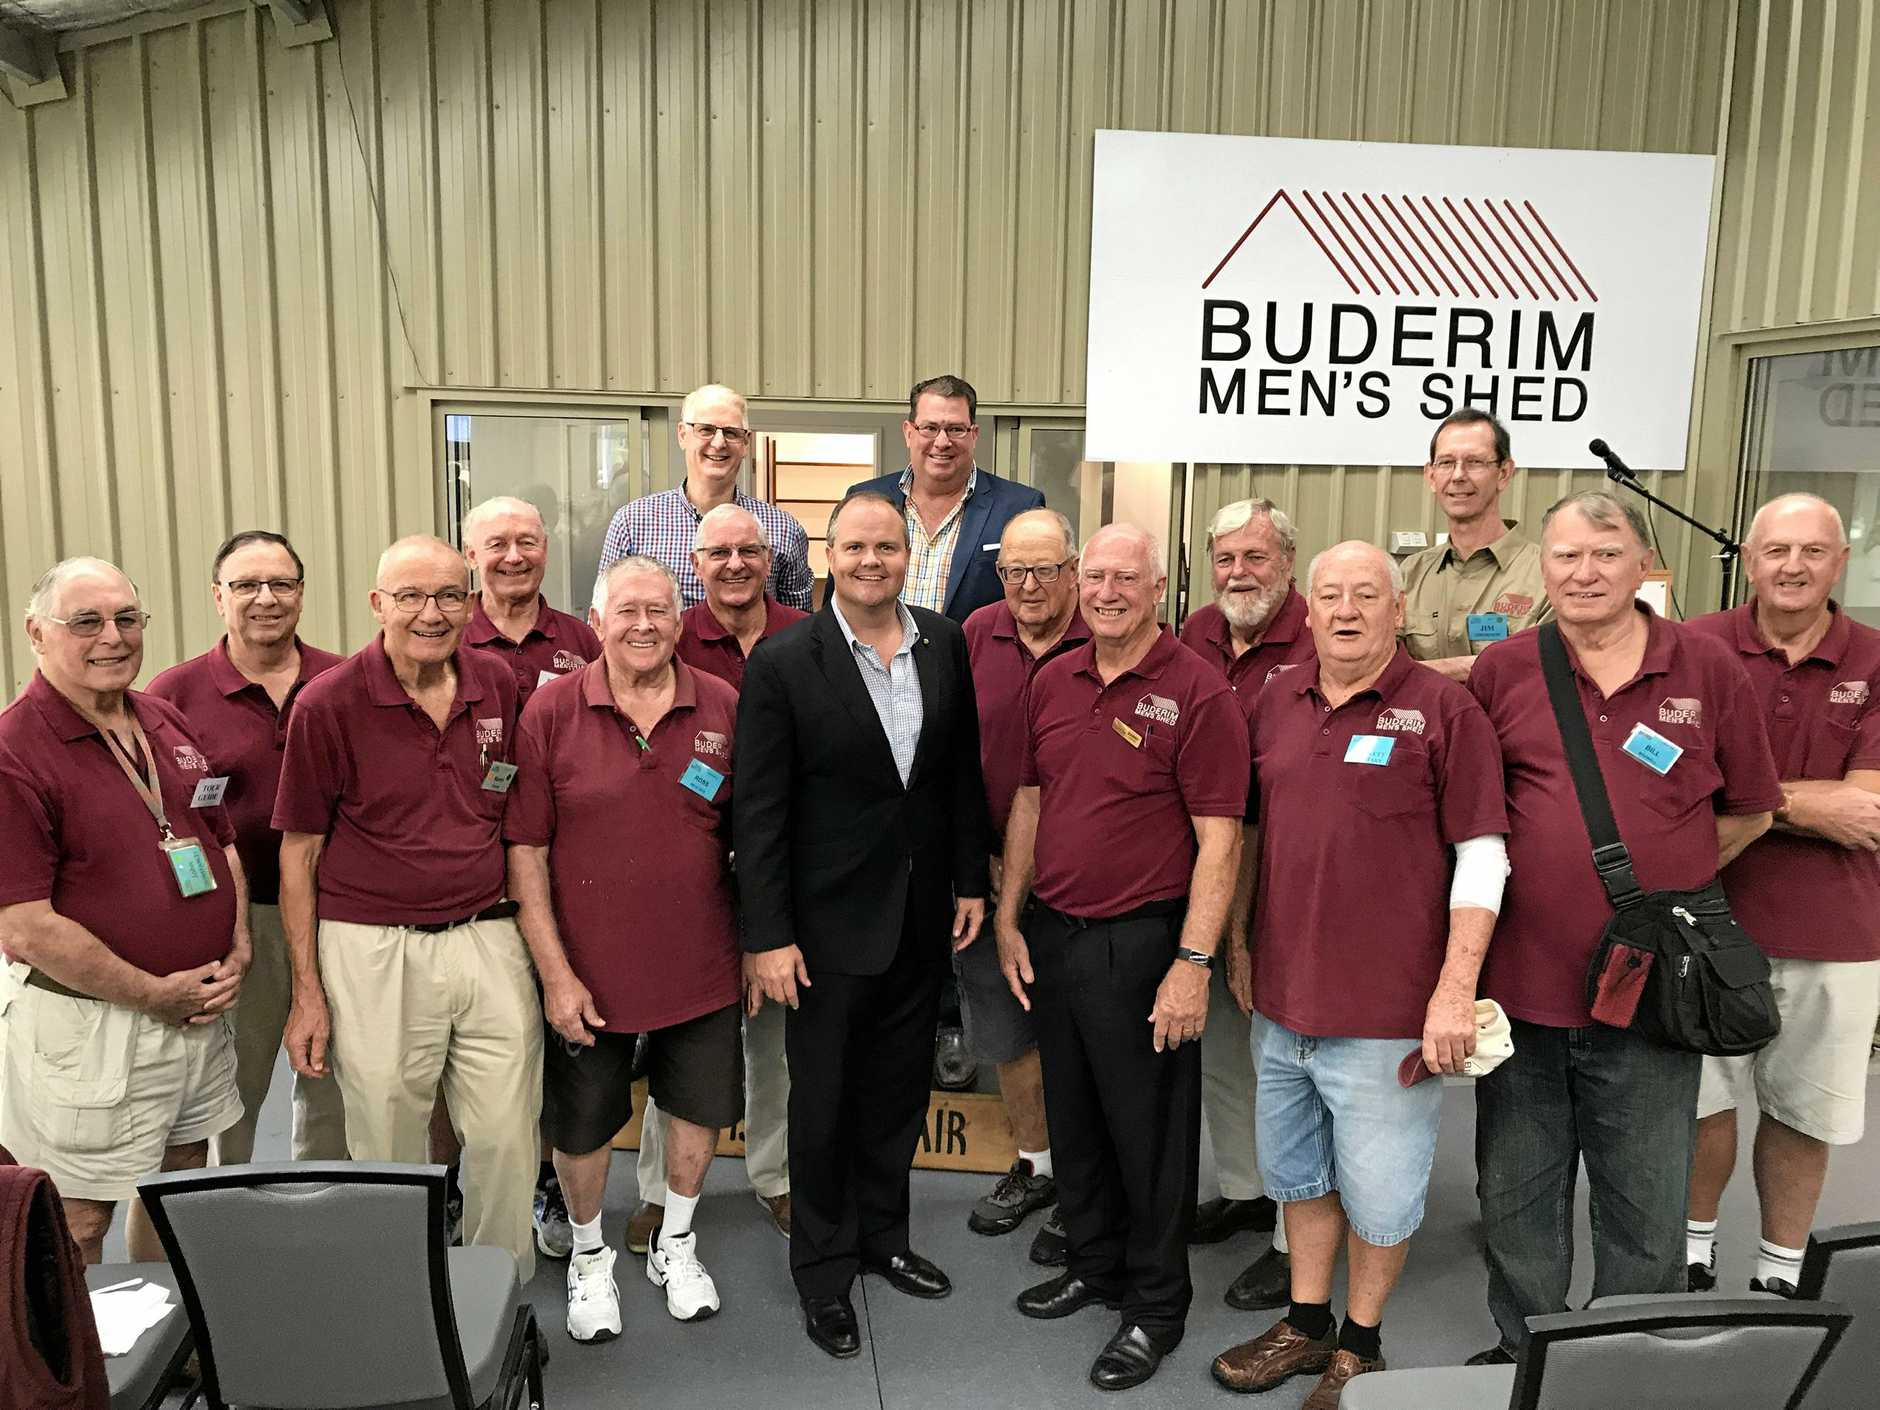 OFFICIAL OPENING: Assistant Minister for Roads and Transport Scott Buchholz with Federal Member for Fairfax Ted O'Brien and President of the Buderim Men's Shed, Mr Barry Cheales and members.